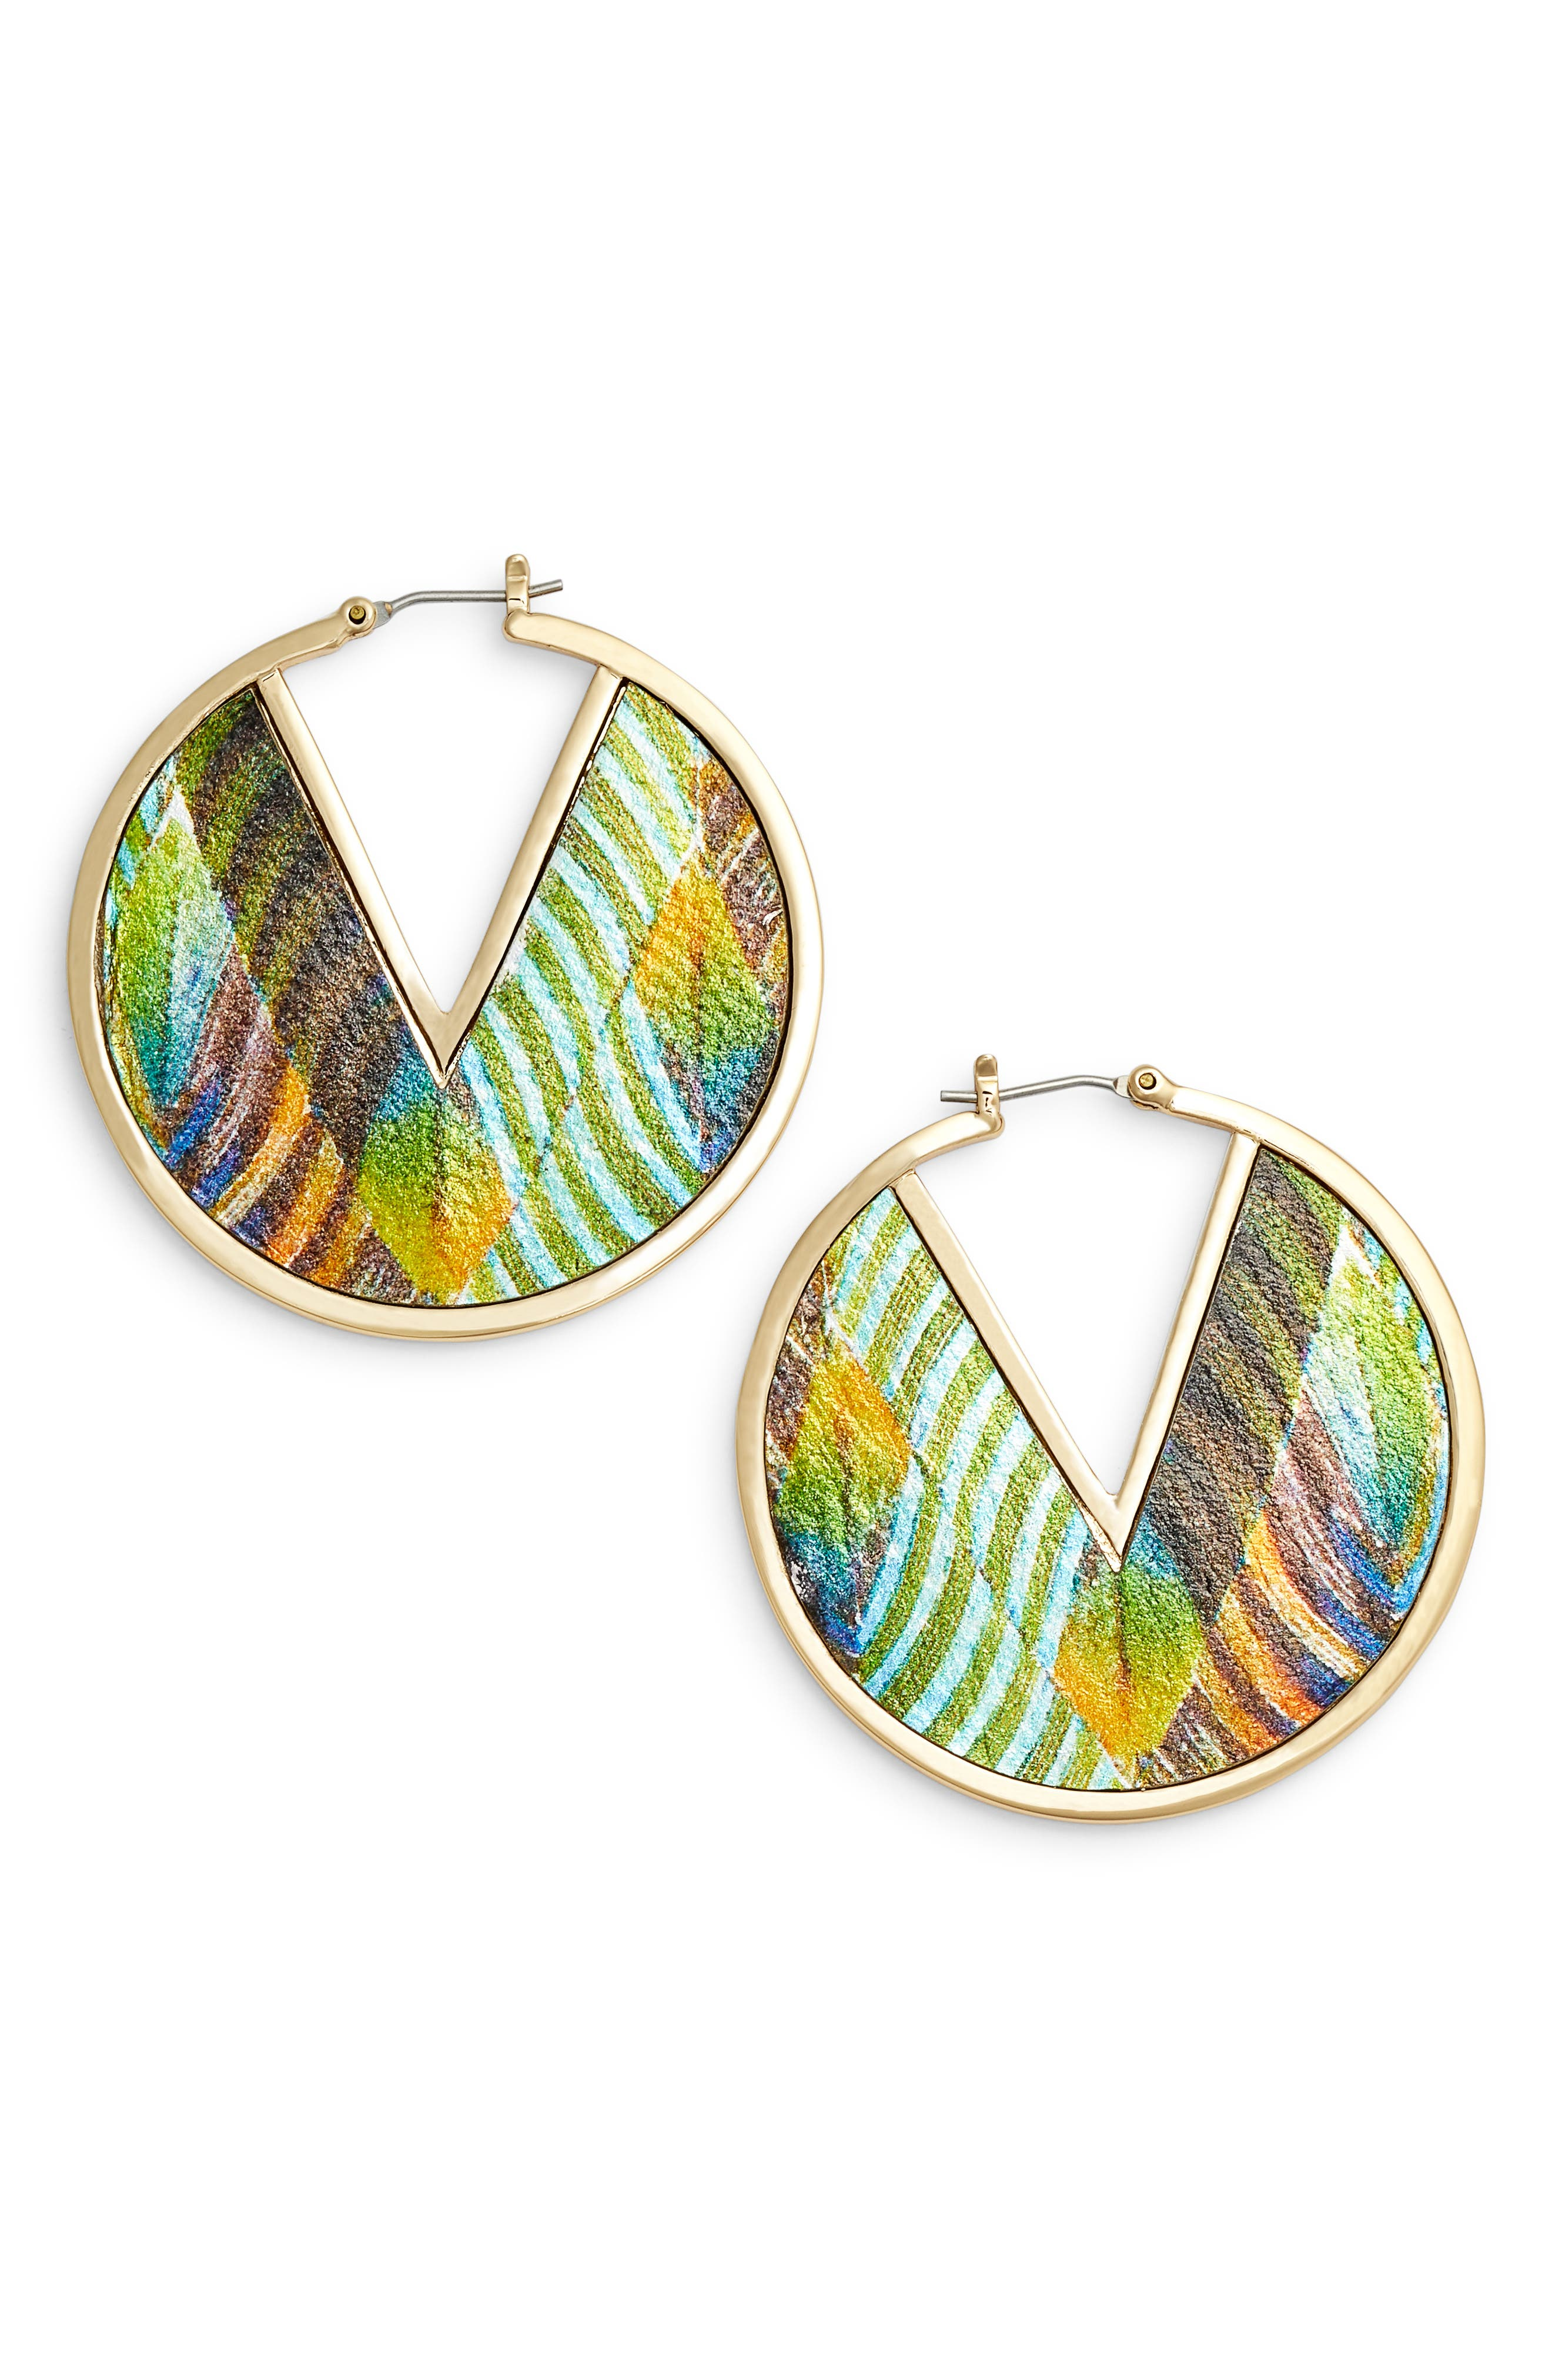 Vince Camuto Inlaid Leather Click Top Hoop Earrings